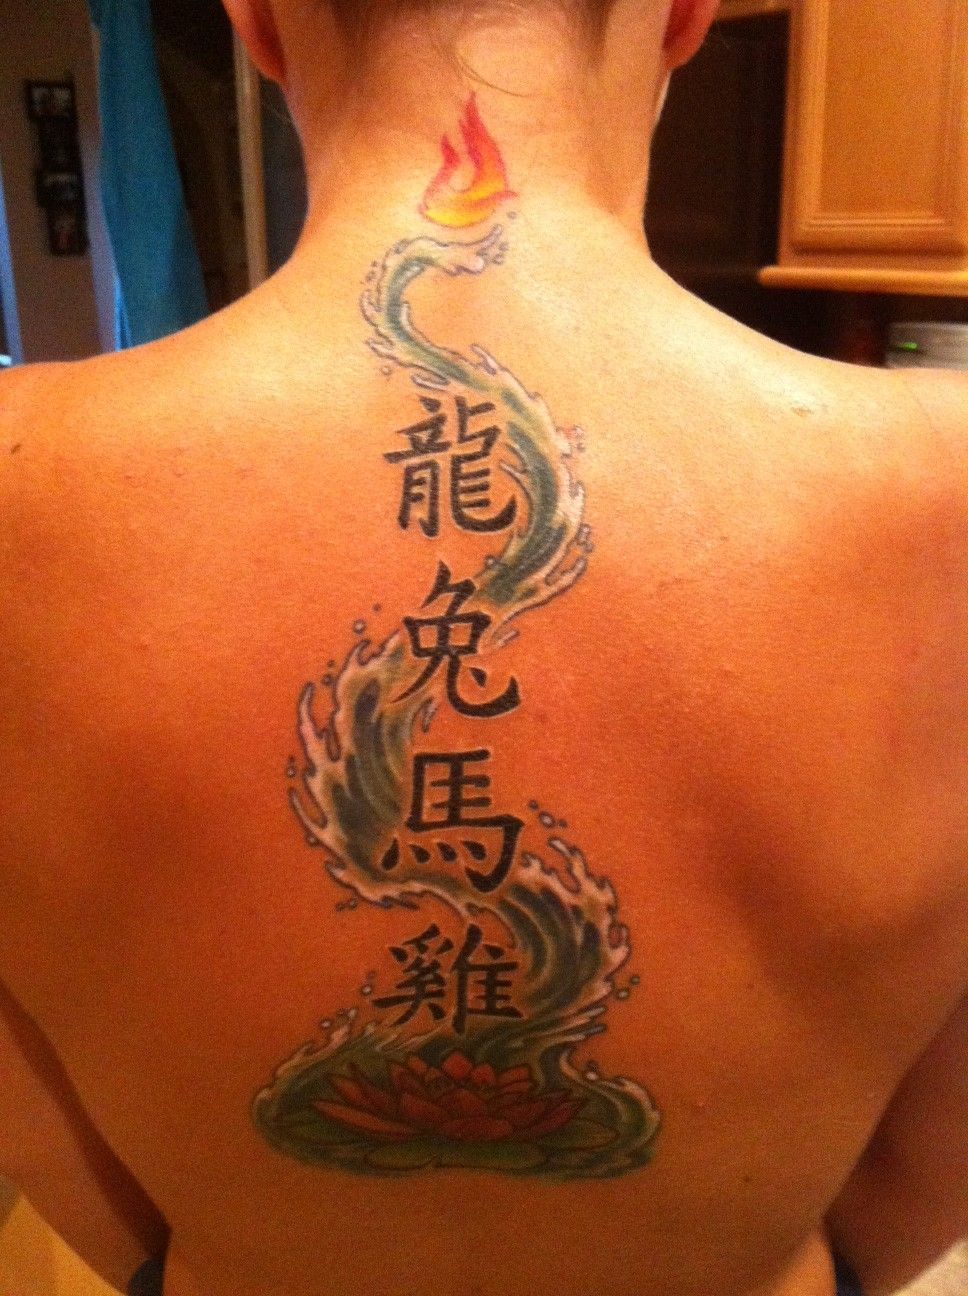 Pin by Allon Lee Ha on My Tattoos Family tattoos, Trendy